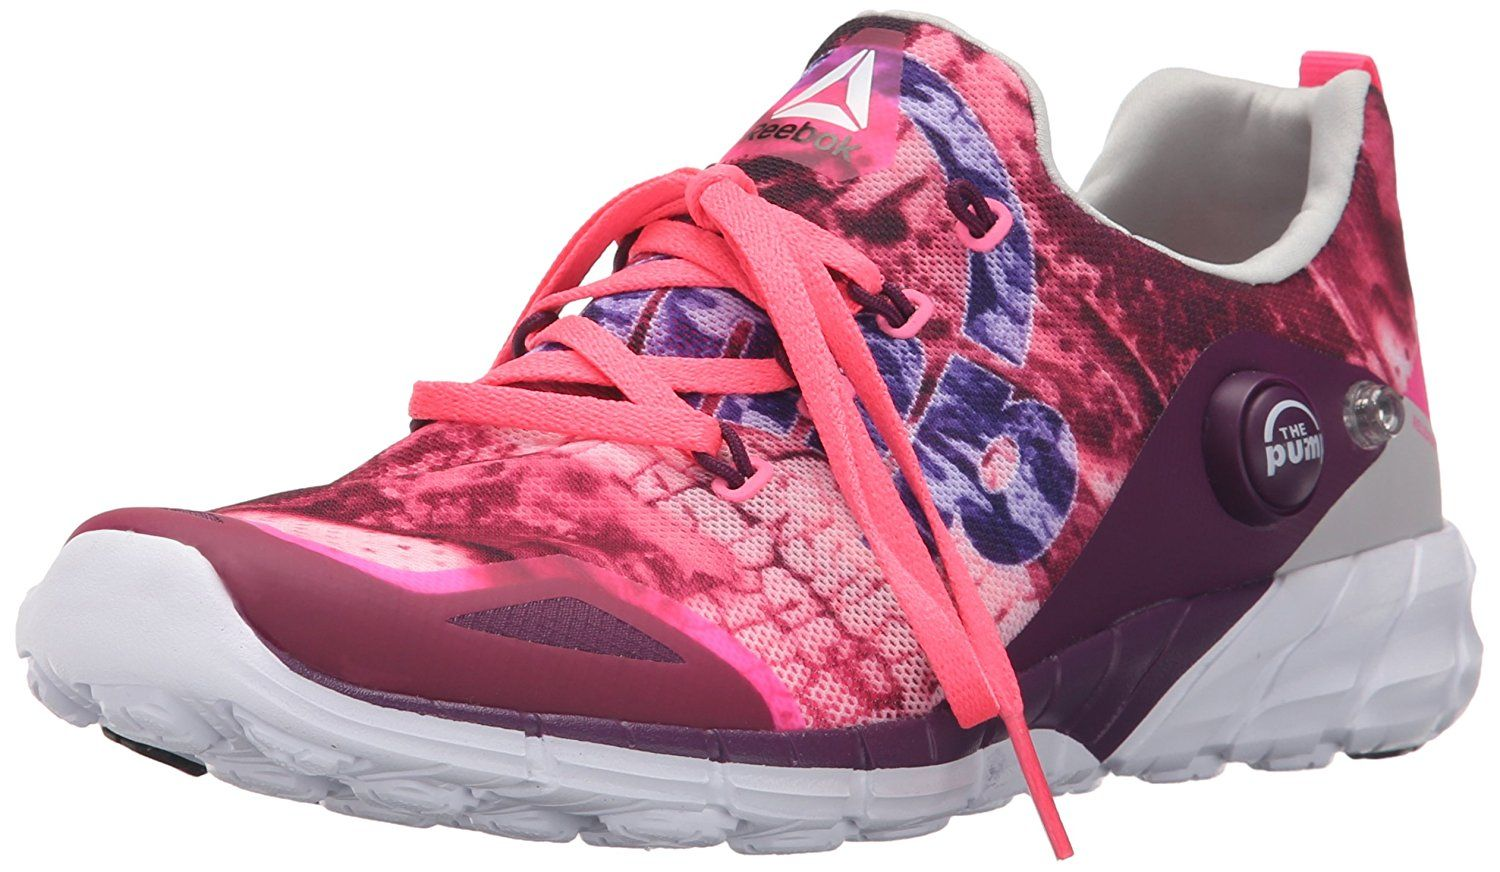 Reebok Women s Zpump Fusion 2.0 Dunes Running Shoe    Find out more details  by clicking the image   Athletic sneaker shoes cf391ae20